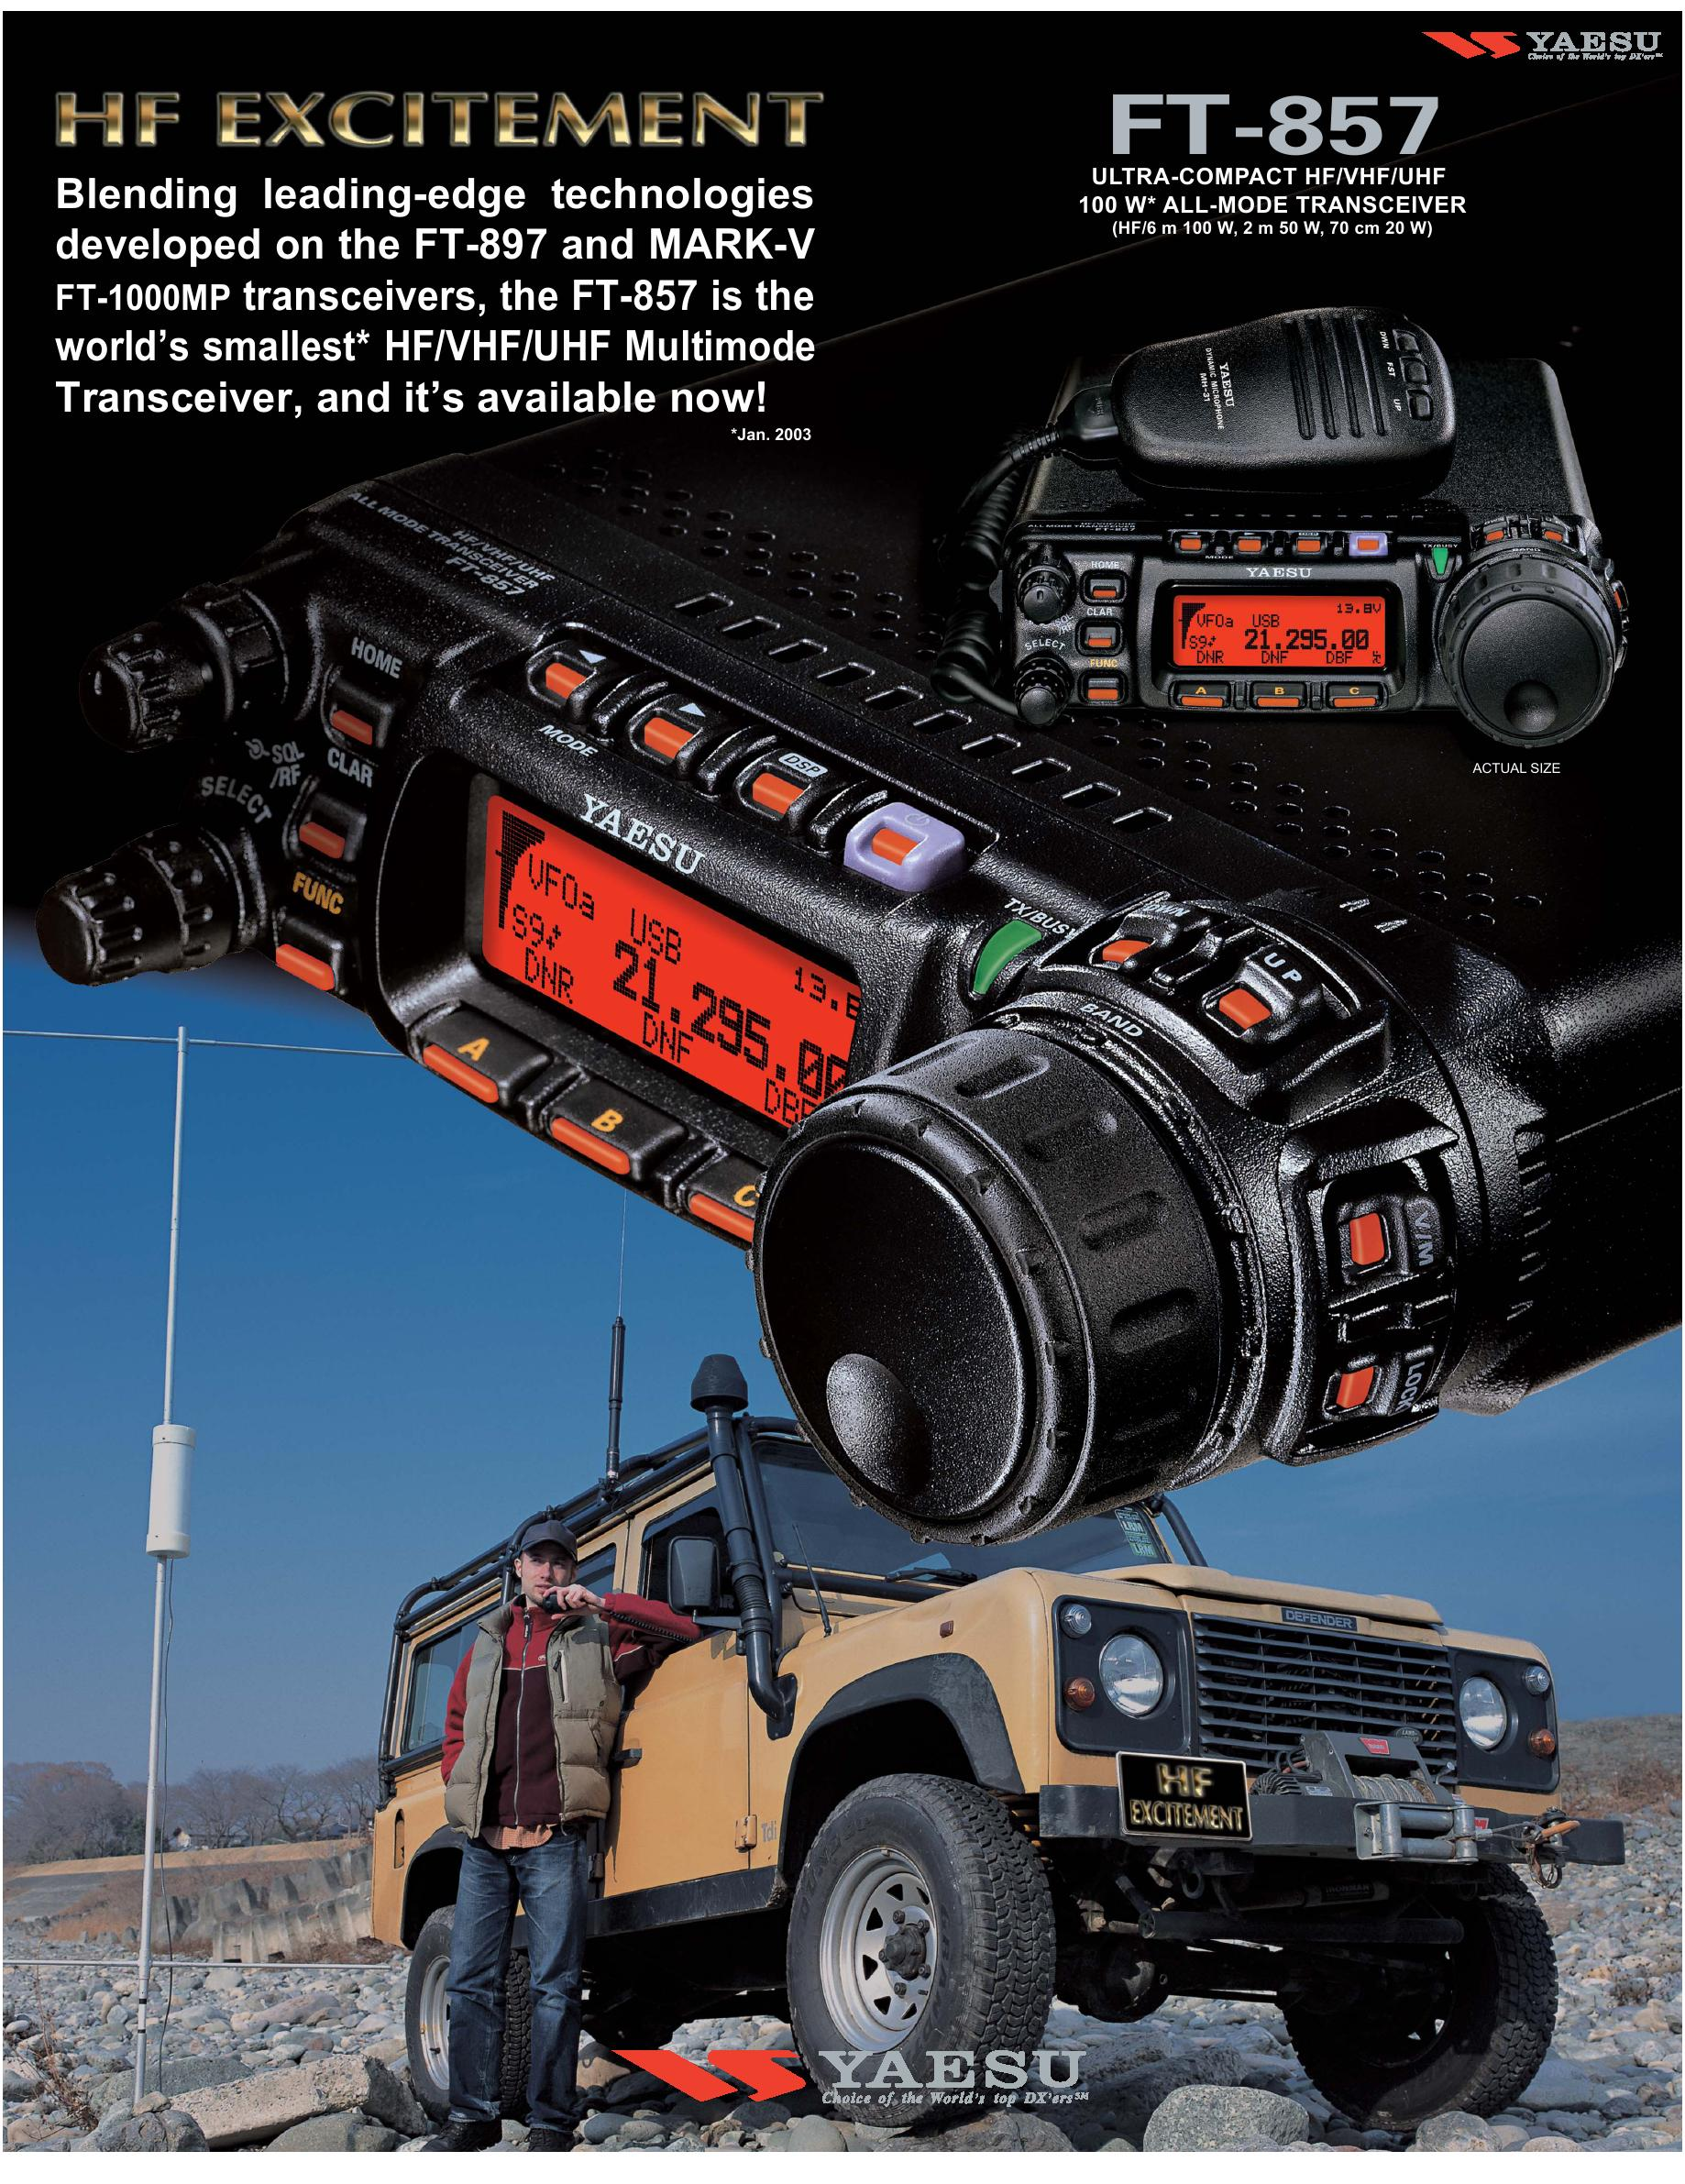 FT-857 Ultra Compact HF/VHF/UHF 100 W All Mode Transceiver